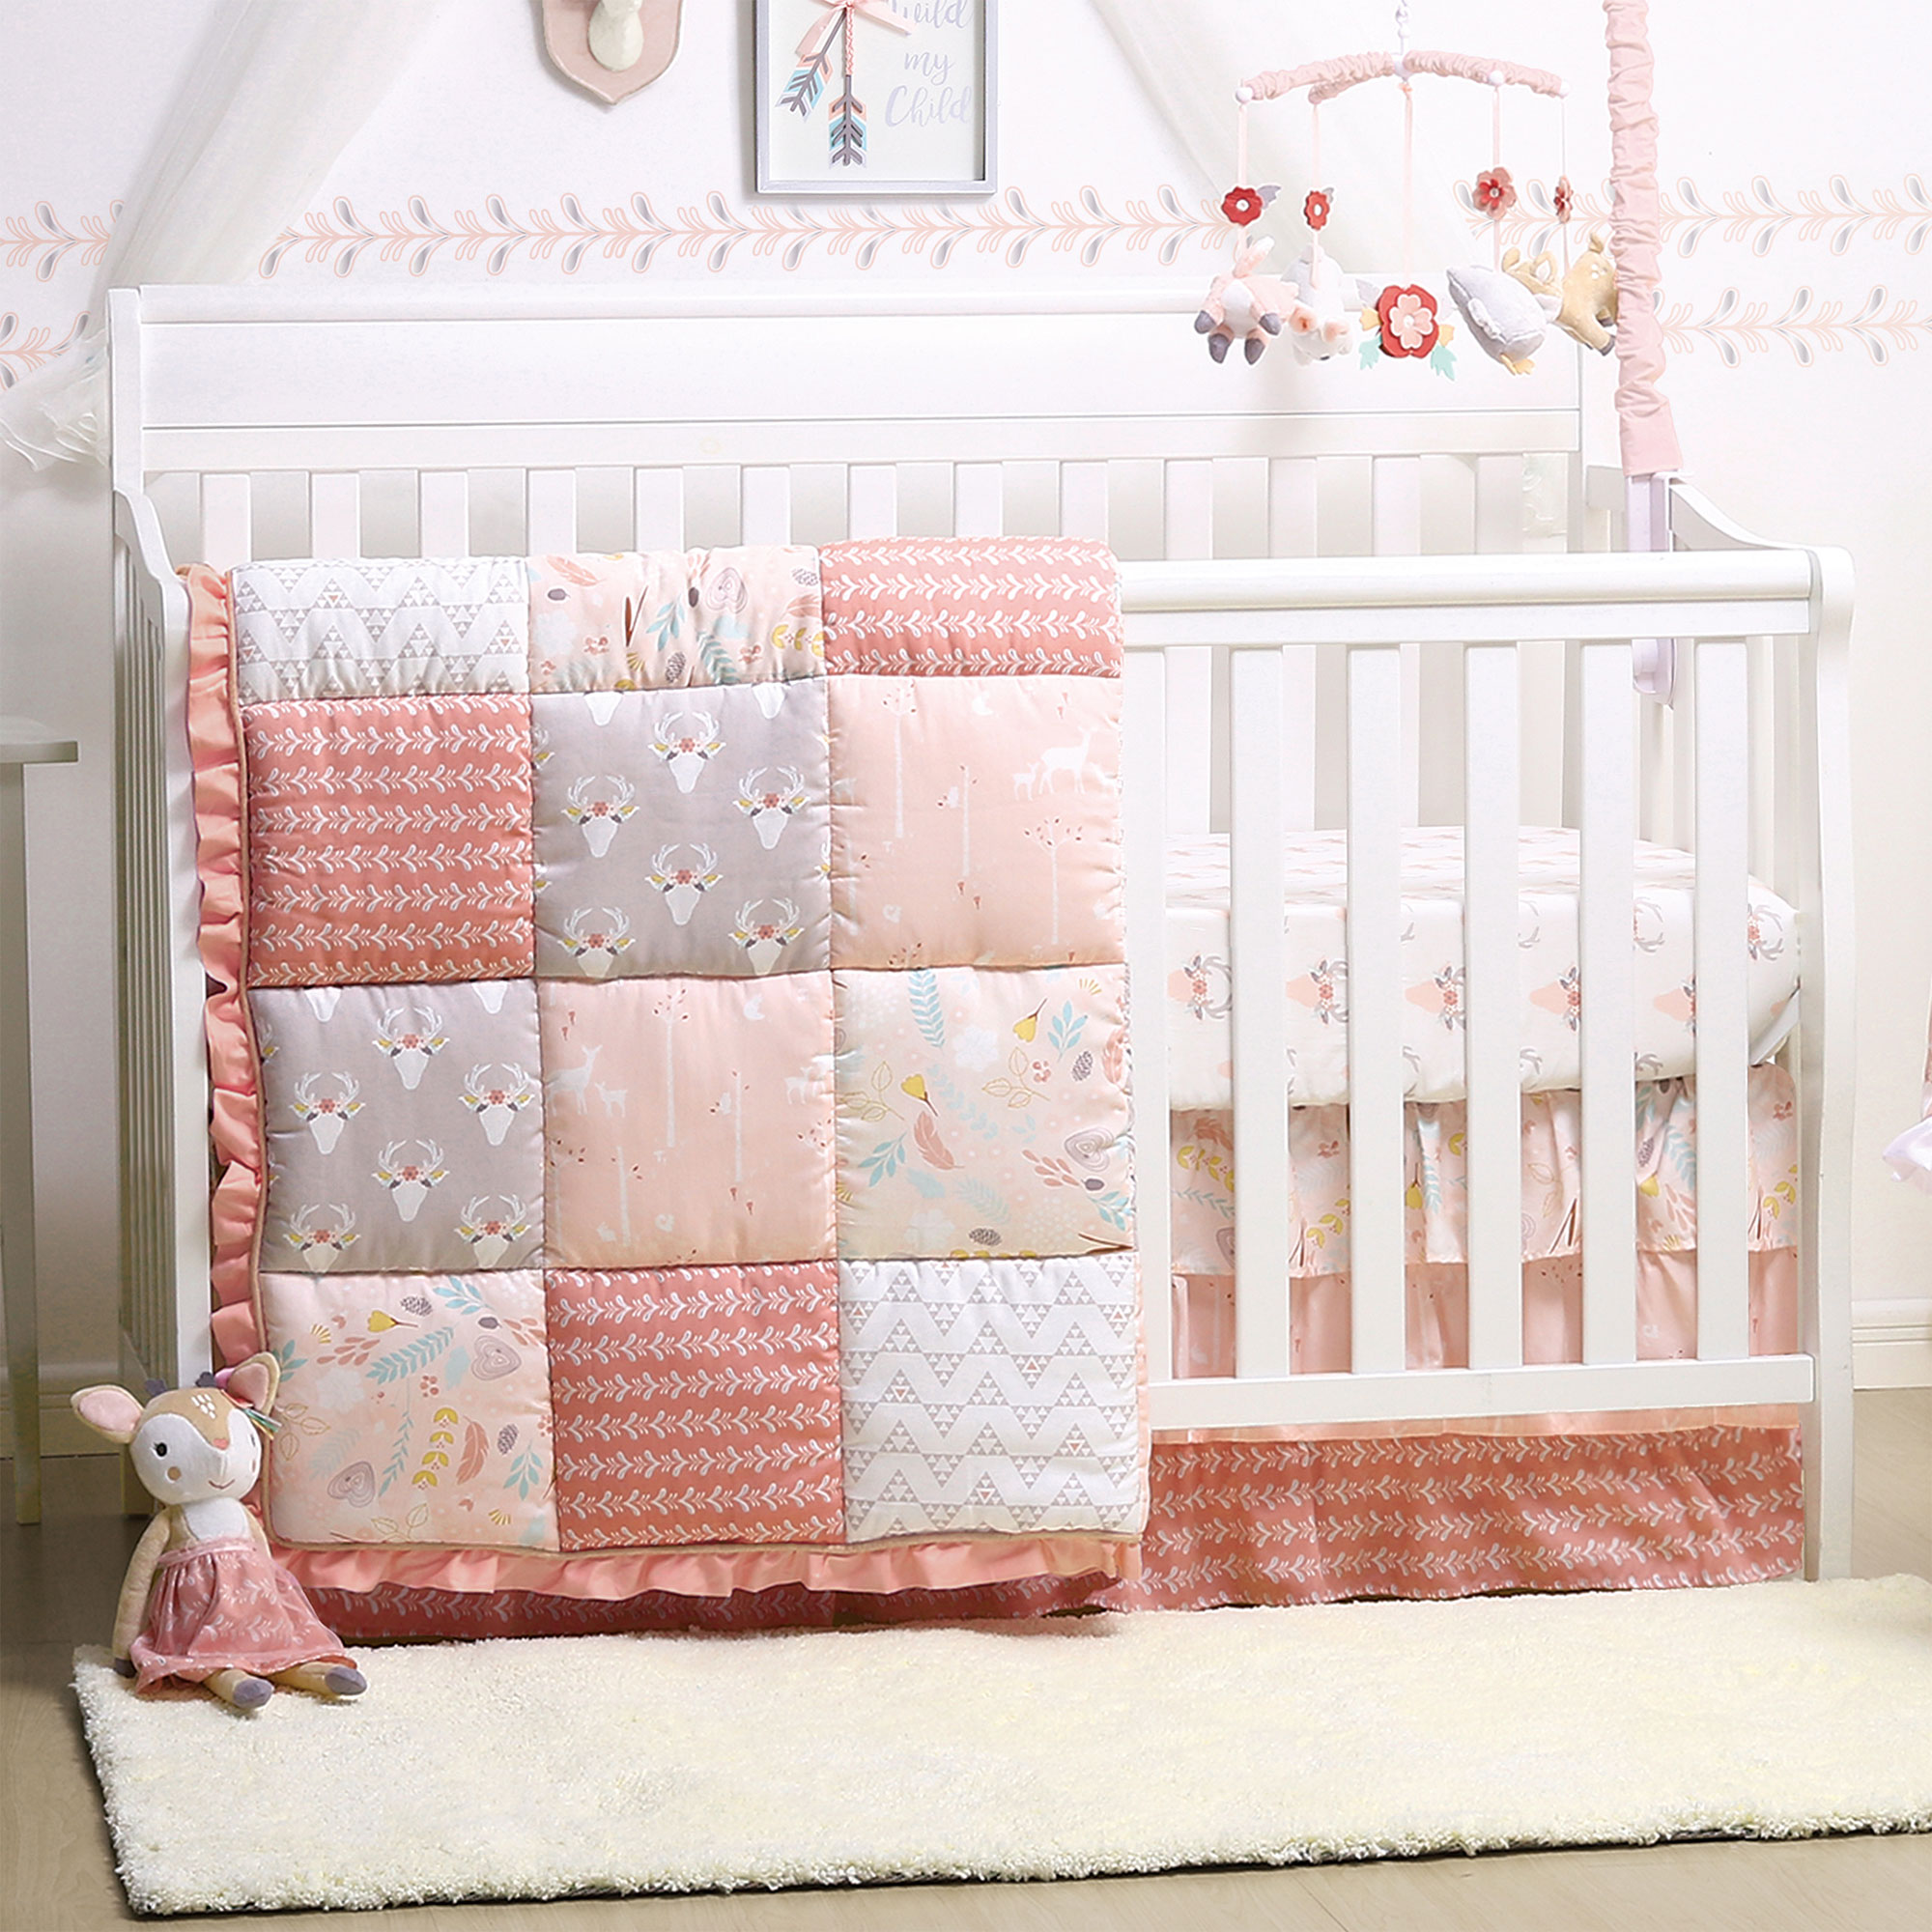 Baby Girl Crib Bedding Forest Animal Theme Woodland Whimsy 4 Piece Set By